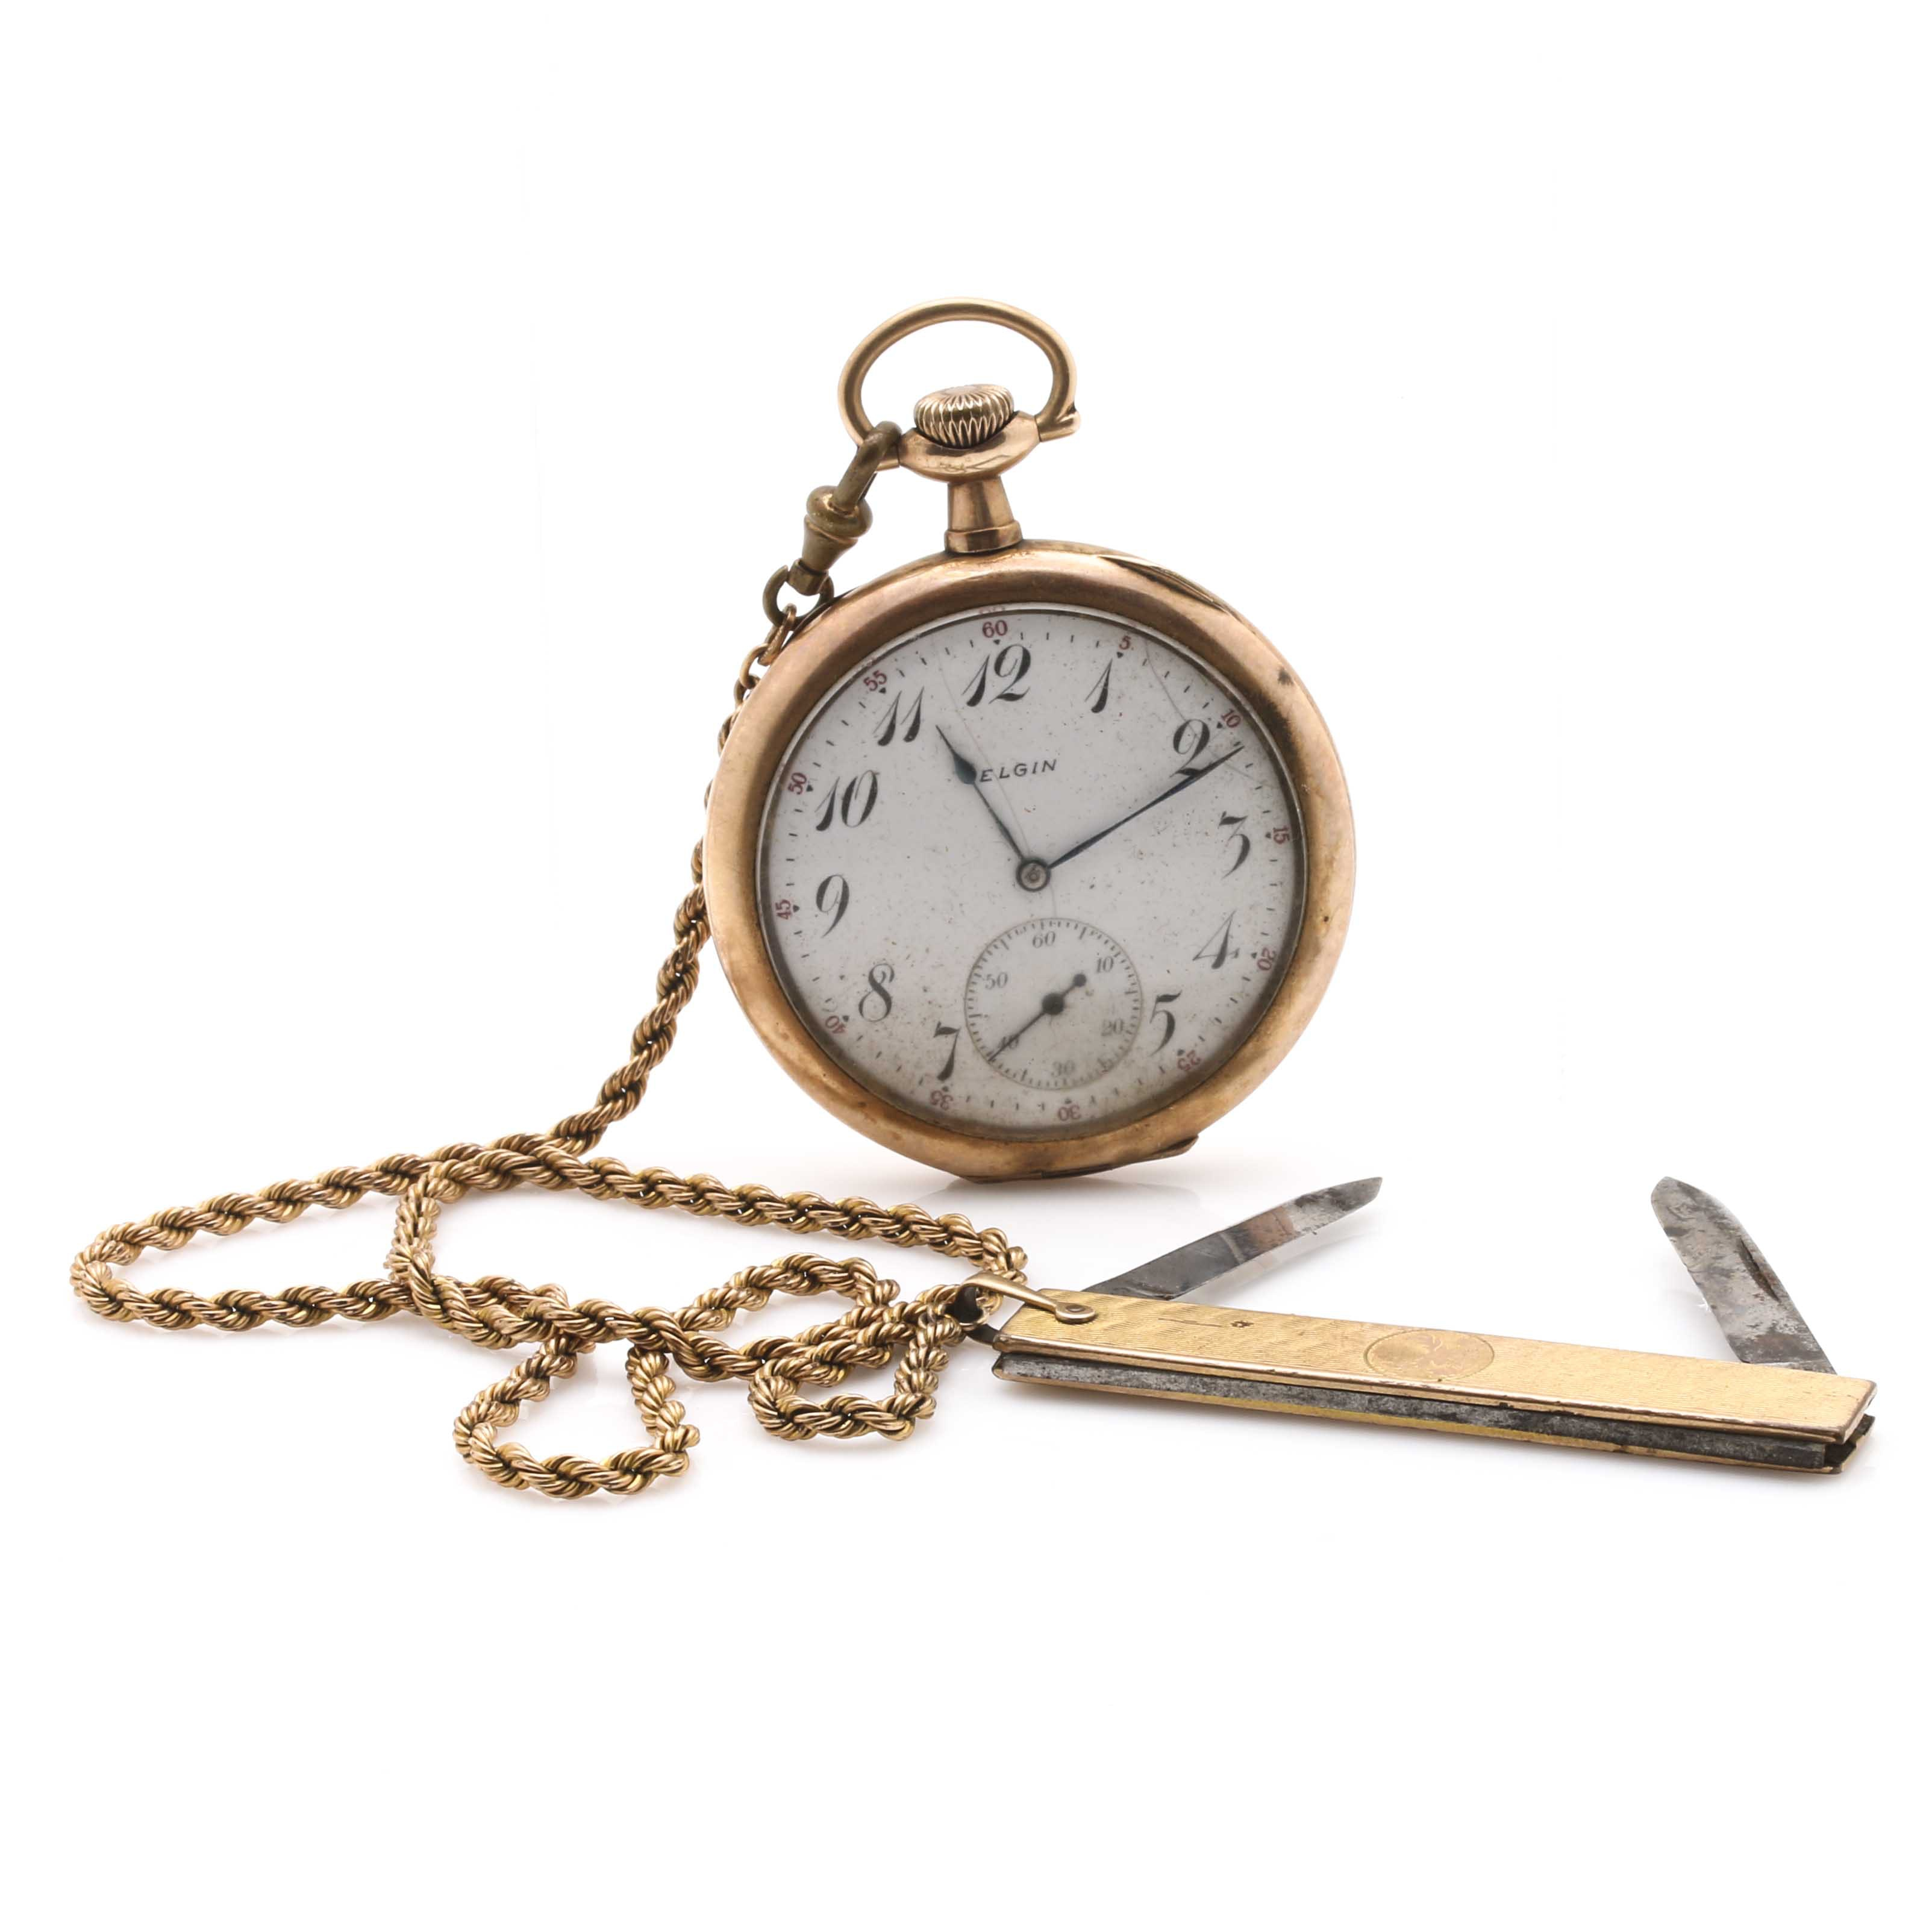 Antique Gold-Filled Elgin Pocketwatch With Link Fob Chain and A&Z BPOE Pocket Knife